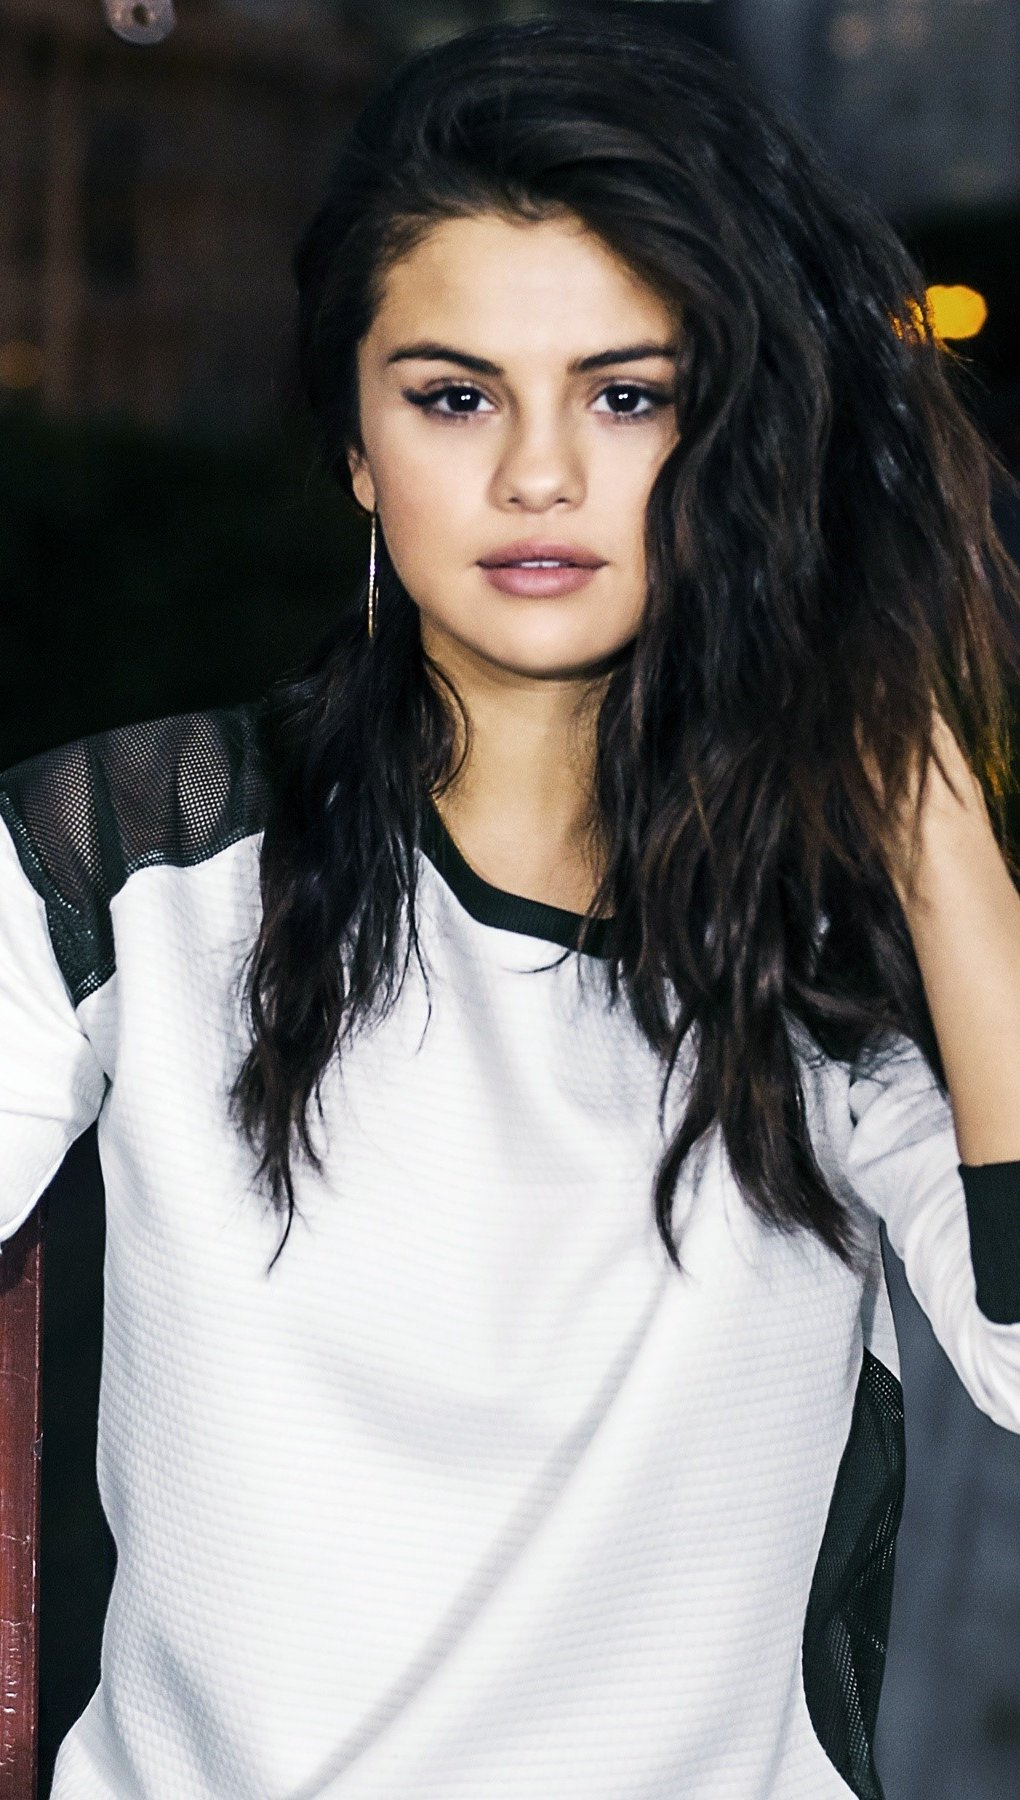 Wallpaper Selena Gomez in a window Vertical